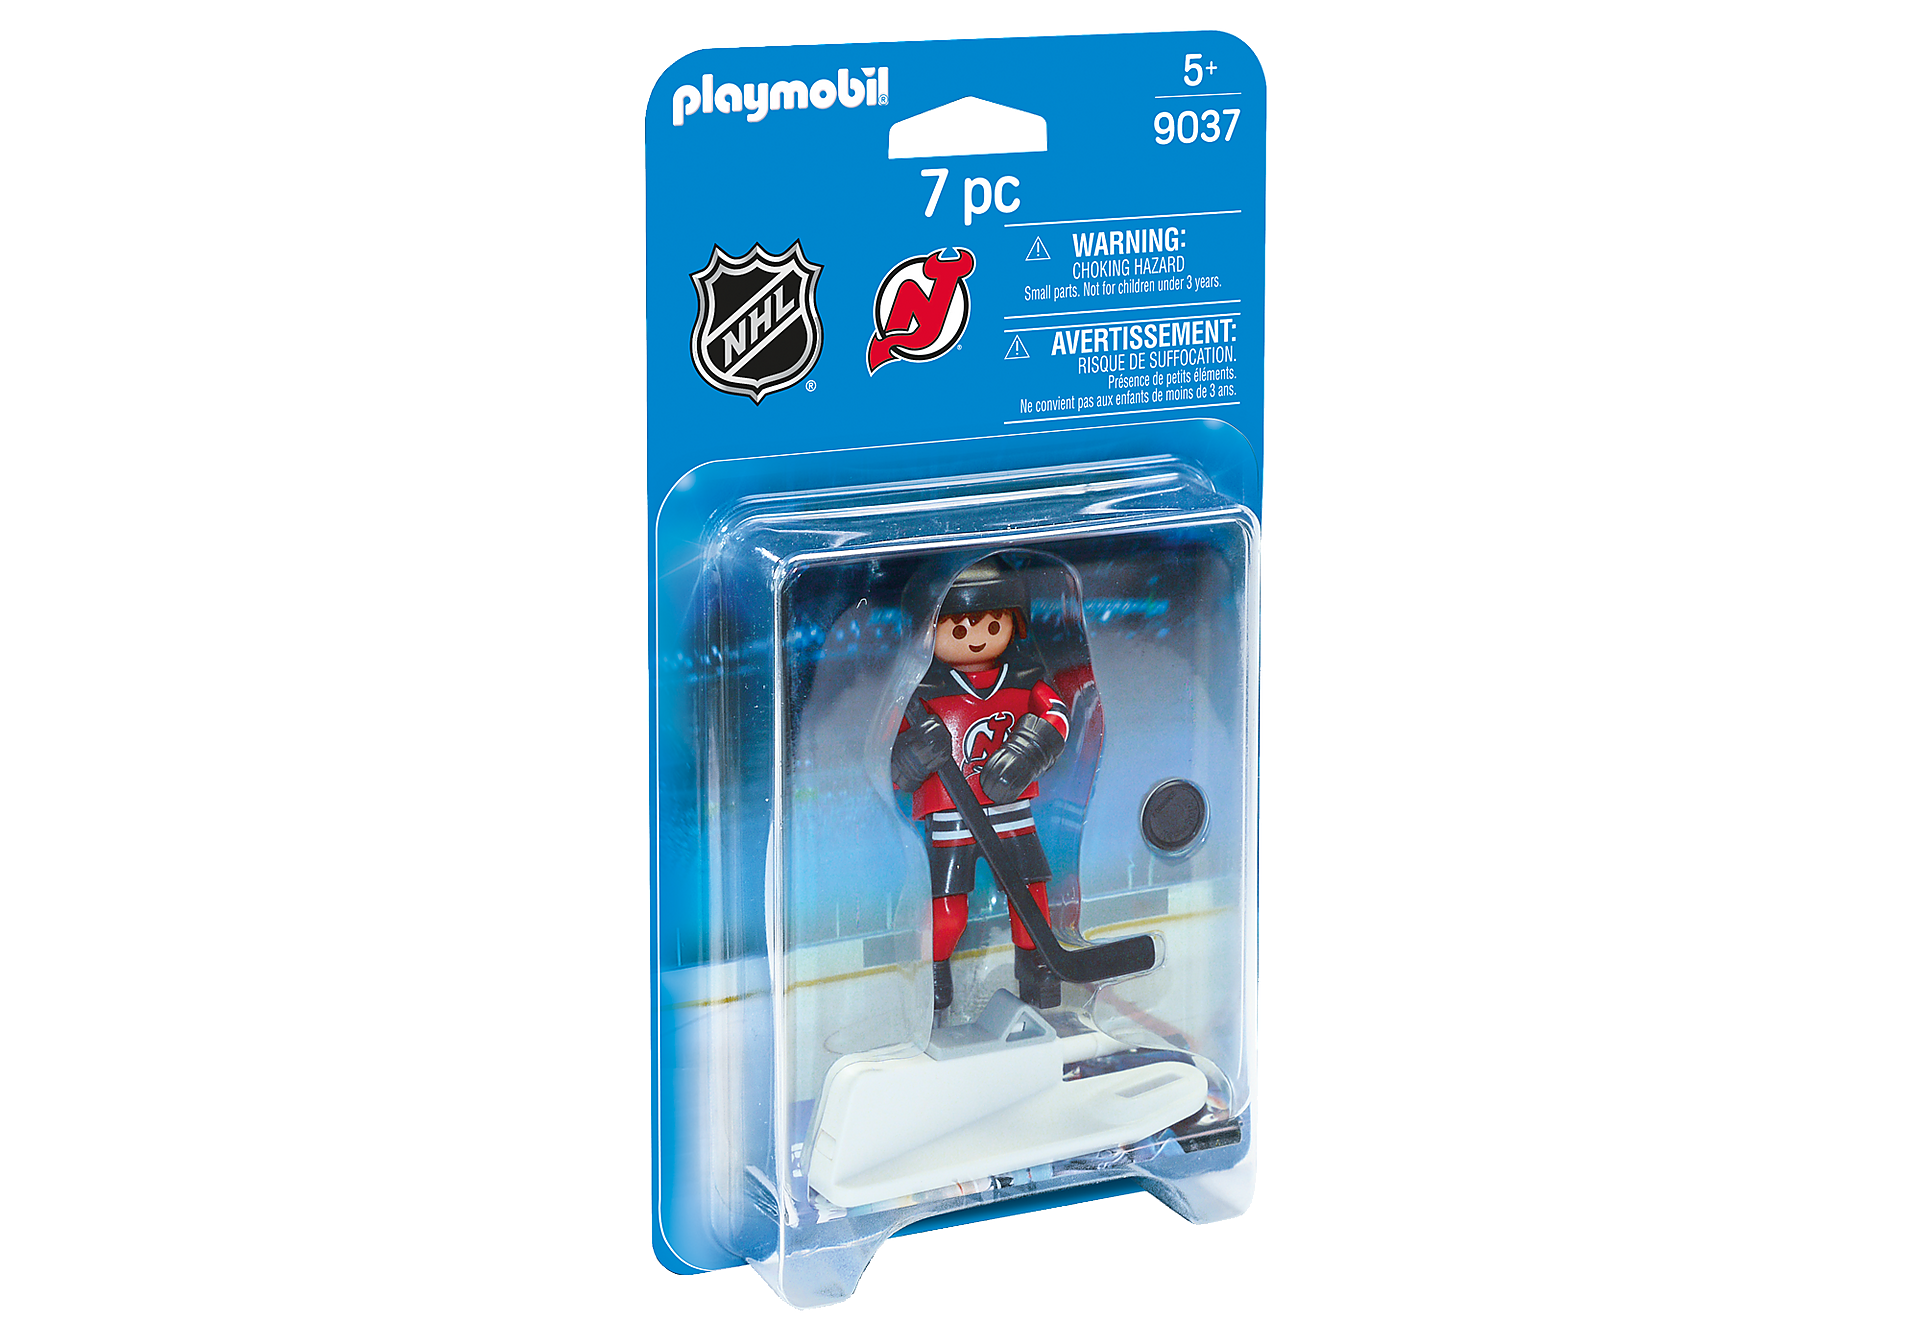 http://media.playmobil.com/i/playmobil/9037_product_box_front/NHL™ New Jersey Devils™ Player